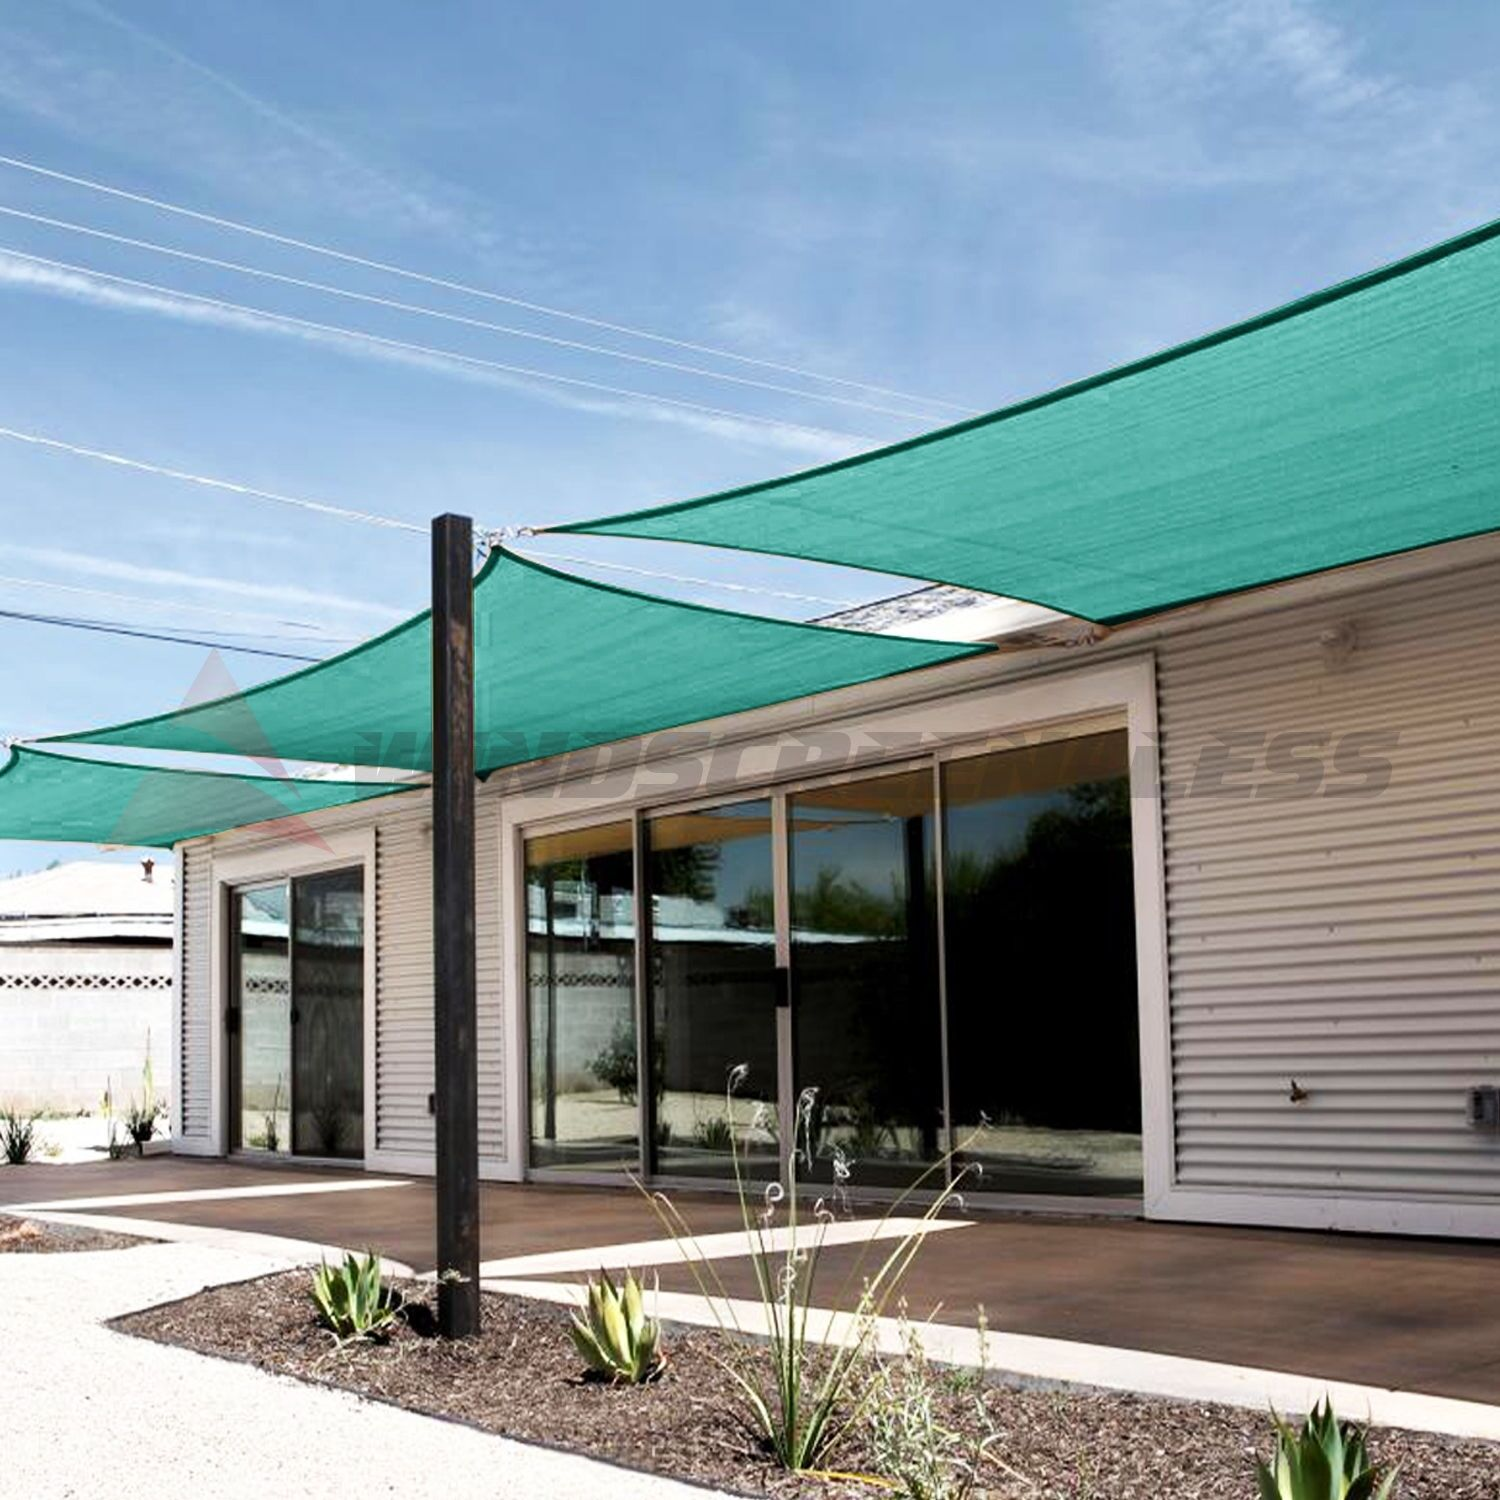 Turquoise Rectangle Sun Shade Sail Fabric Garden Patio Pool Awning Canopy Cover Ebay